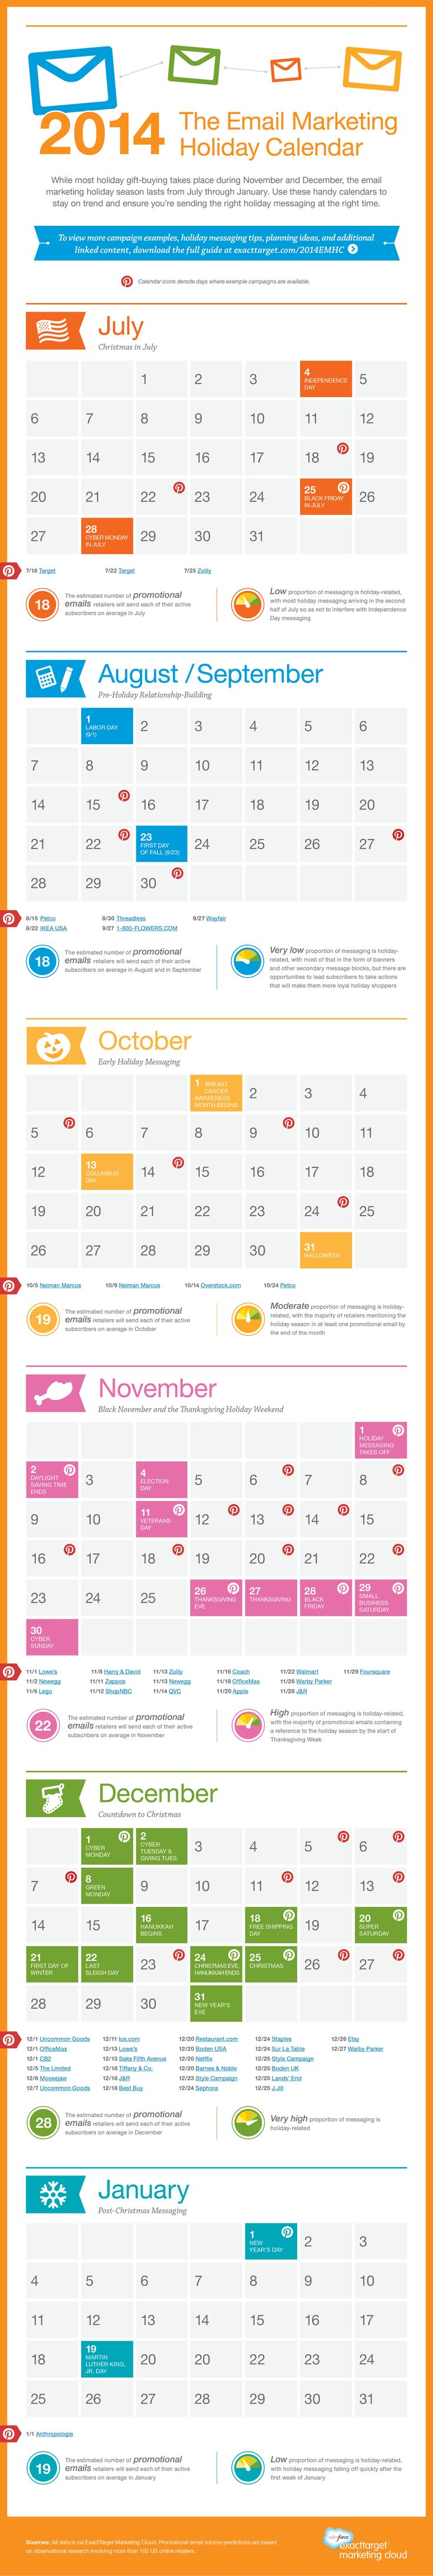 The 2014 Email Marketing Holiday Calendar: Trends, Tips, and Examples